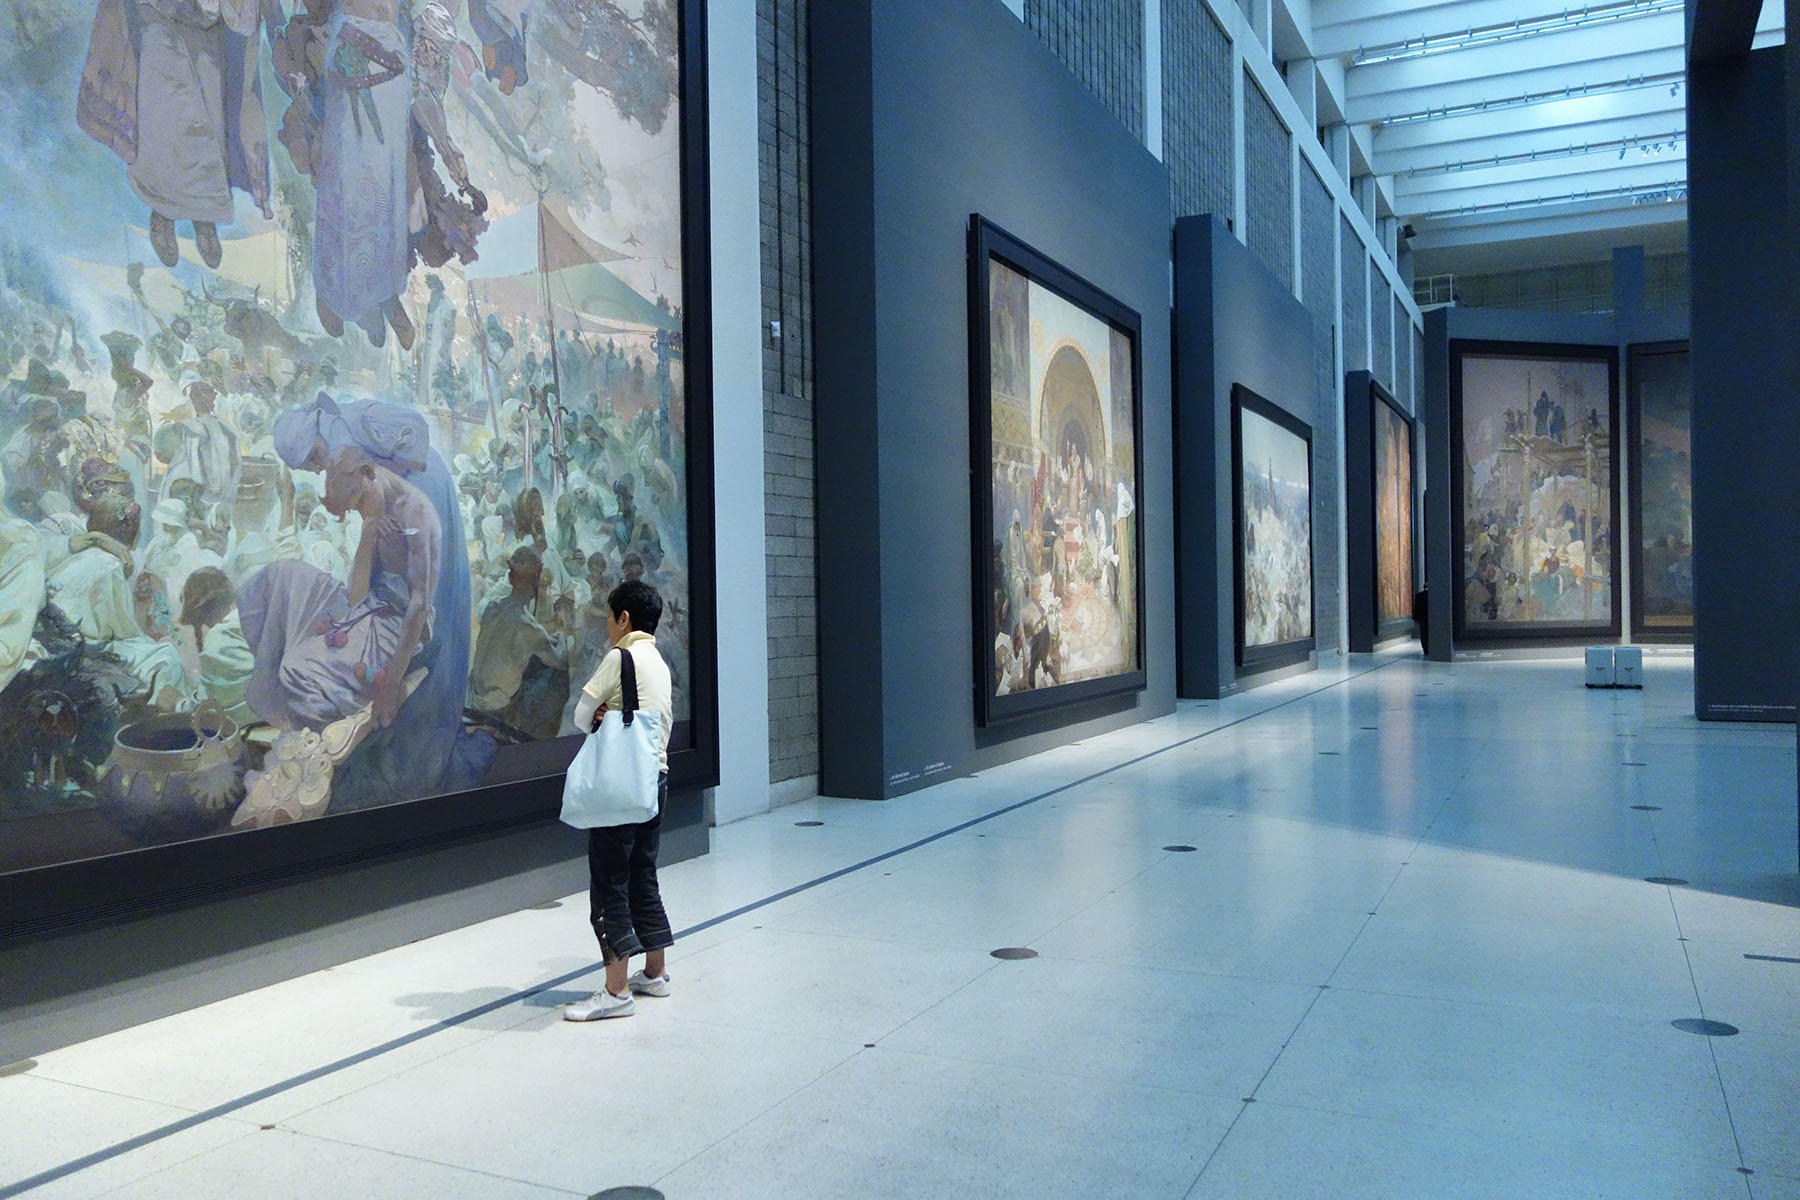 Viewing the masterful canvases of Mucha's Slav Epic is a forceful artistic experience.